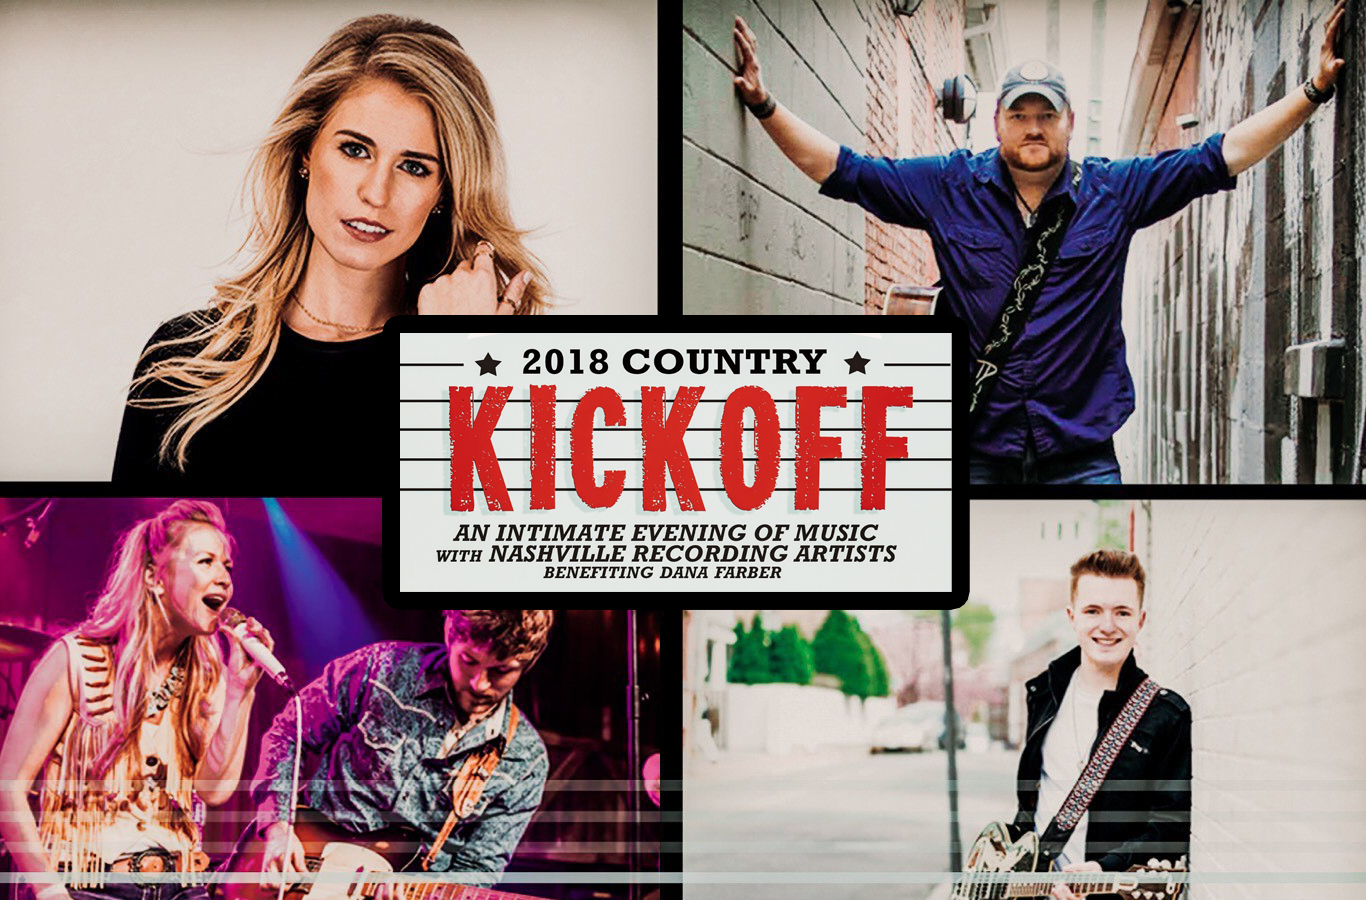 2018 Country Kickoff thumb